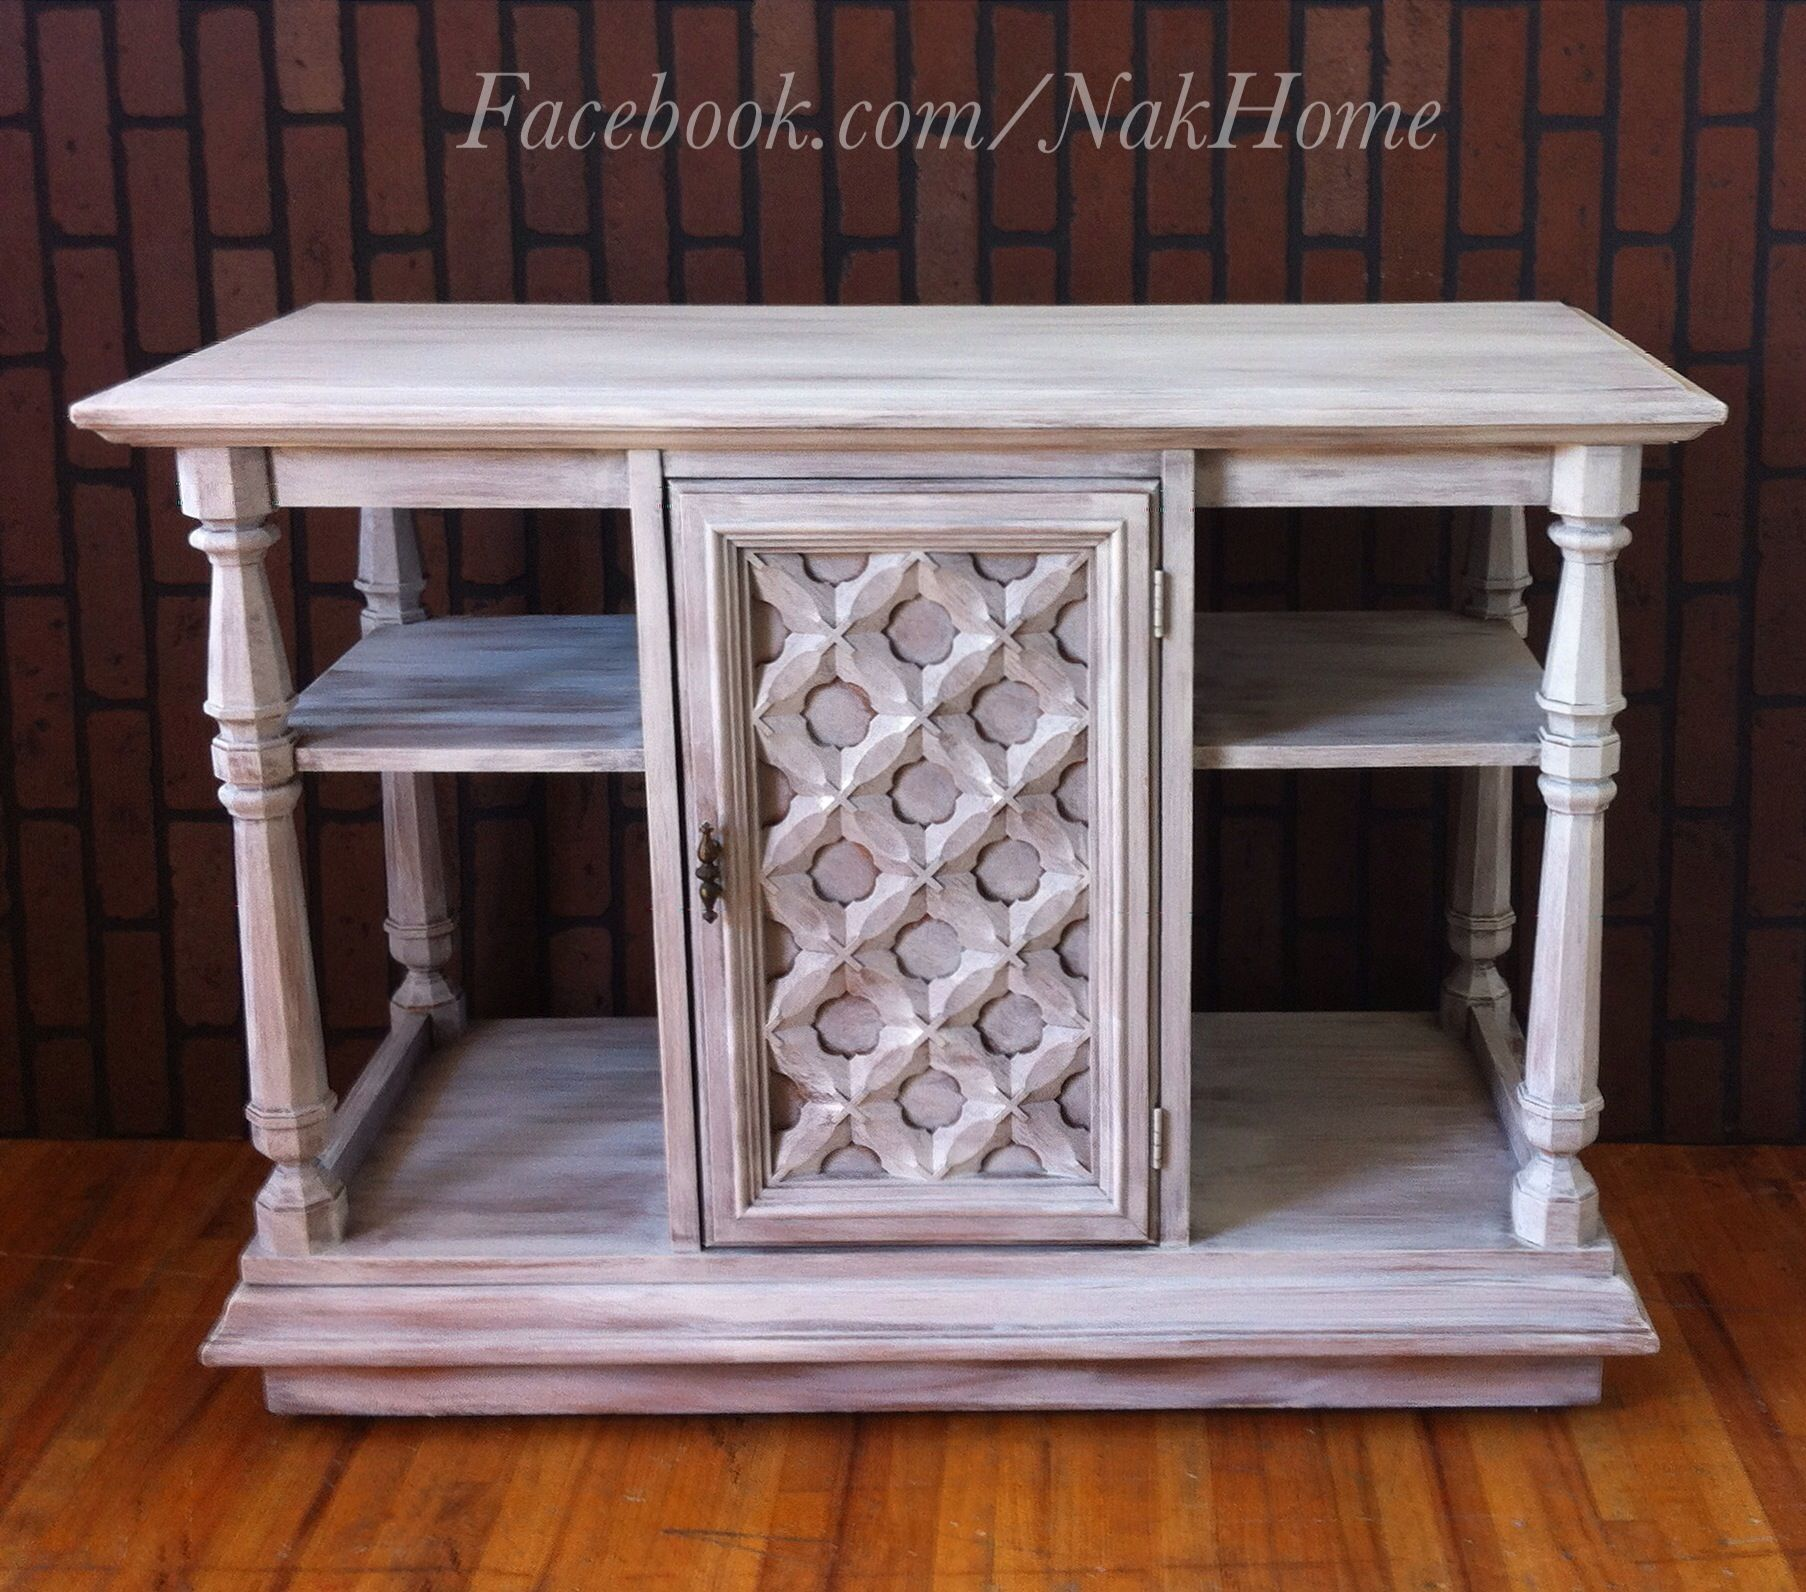 Furniture Makeover Shabby Chic White Vintage Buffet Tv Stand Console Bar Cabinet Hand Painted With Chalk Paint And Distressed Facebook Nakhome